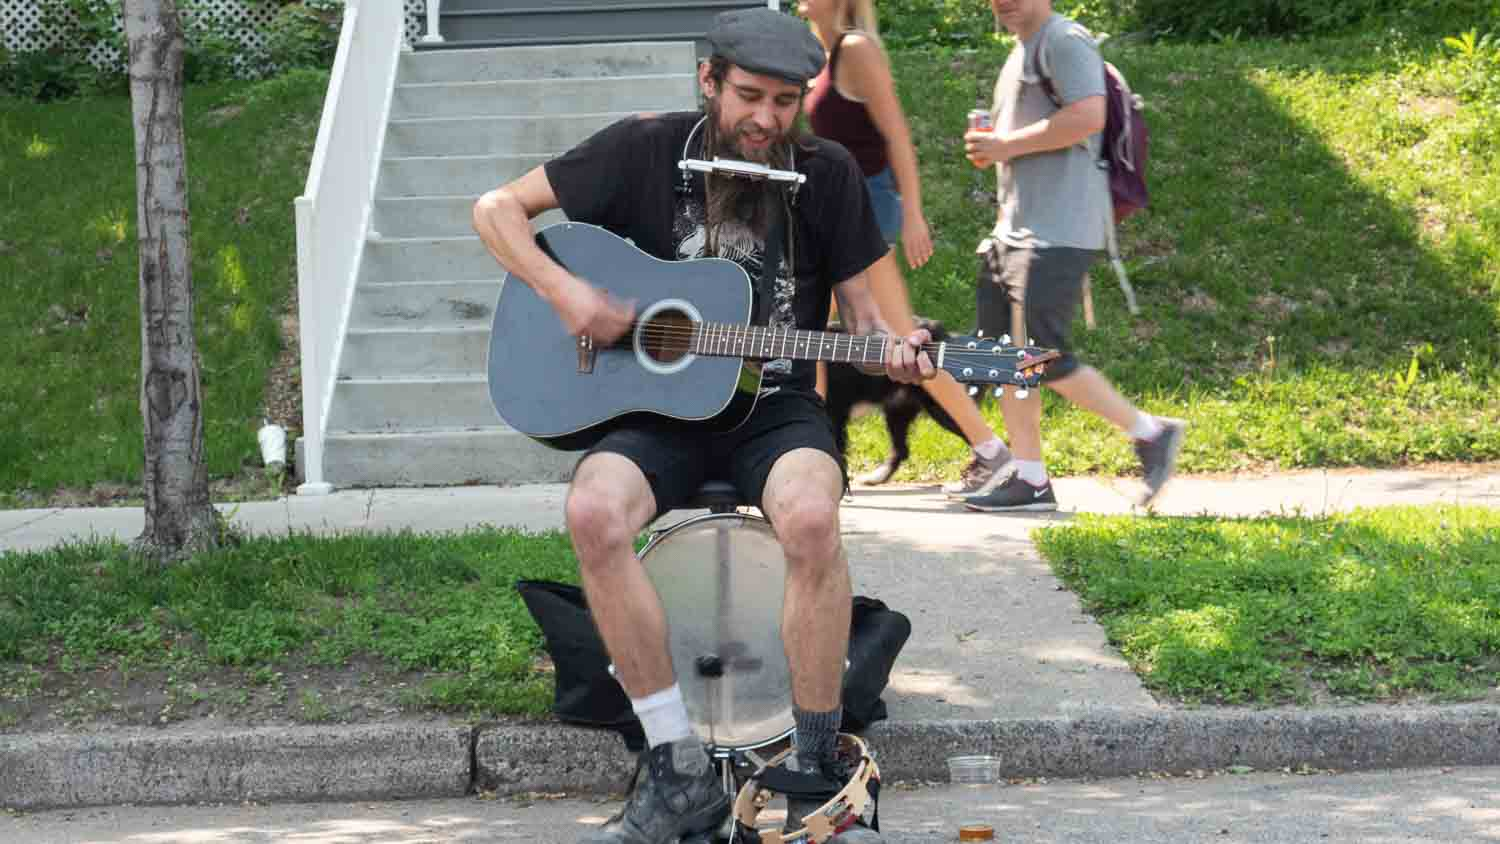 Riley Coyote busks at Open Streets Lyndale Minneapolsi 2019